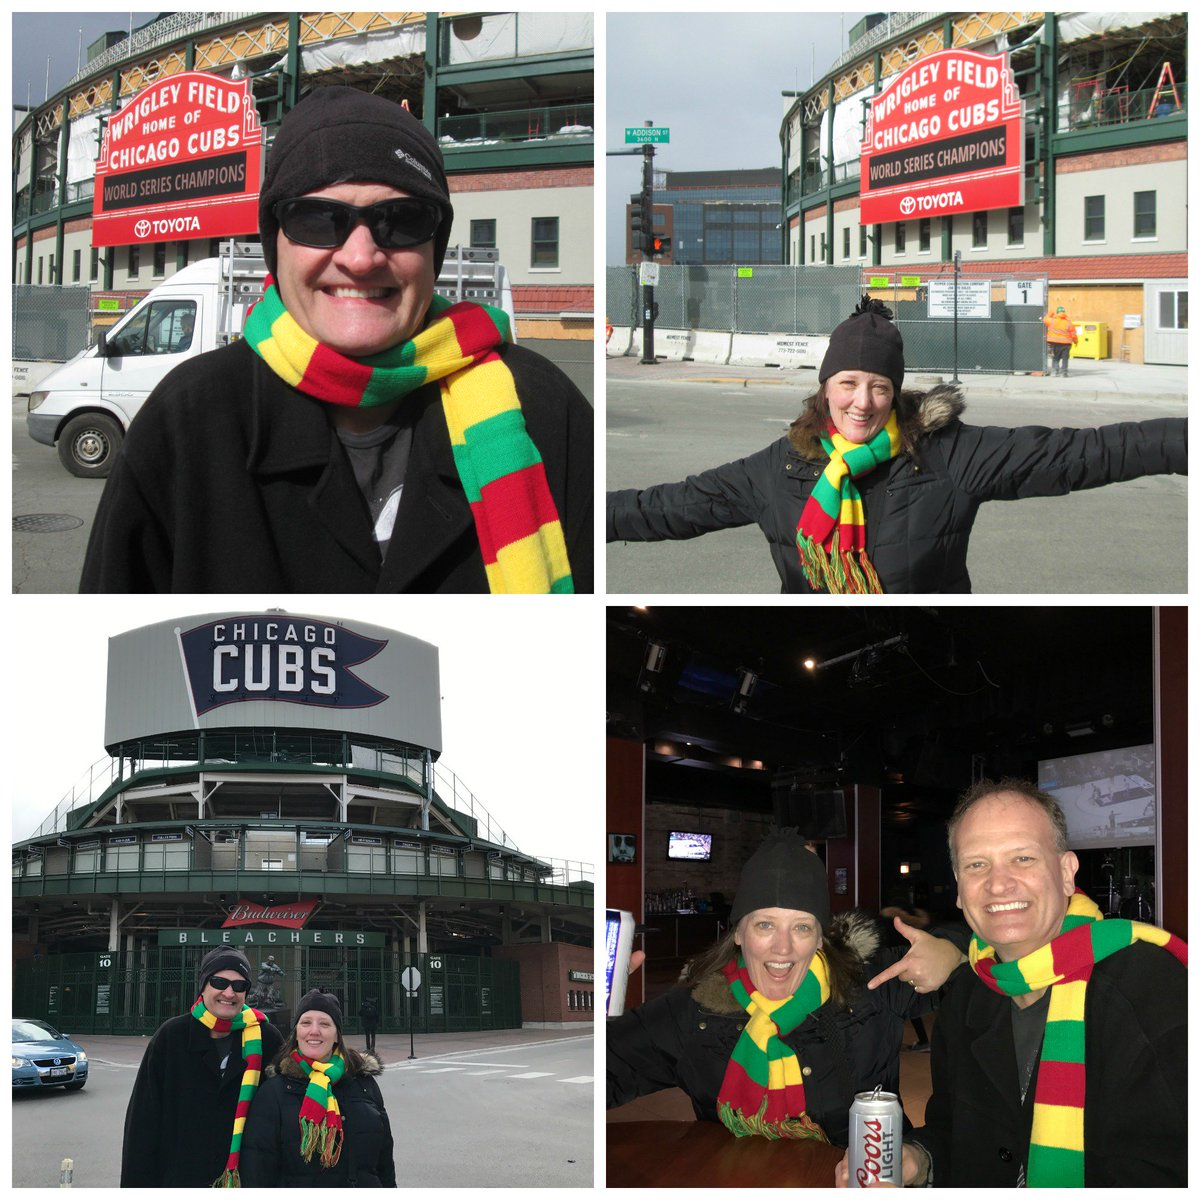 Vastelaovend 2017 at #WrigleyField & the @cubbybear in #Chicago! H...